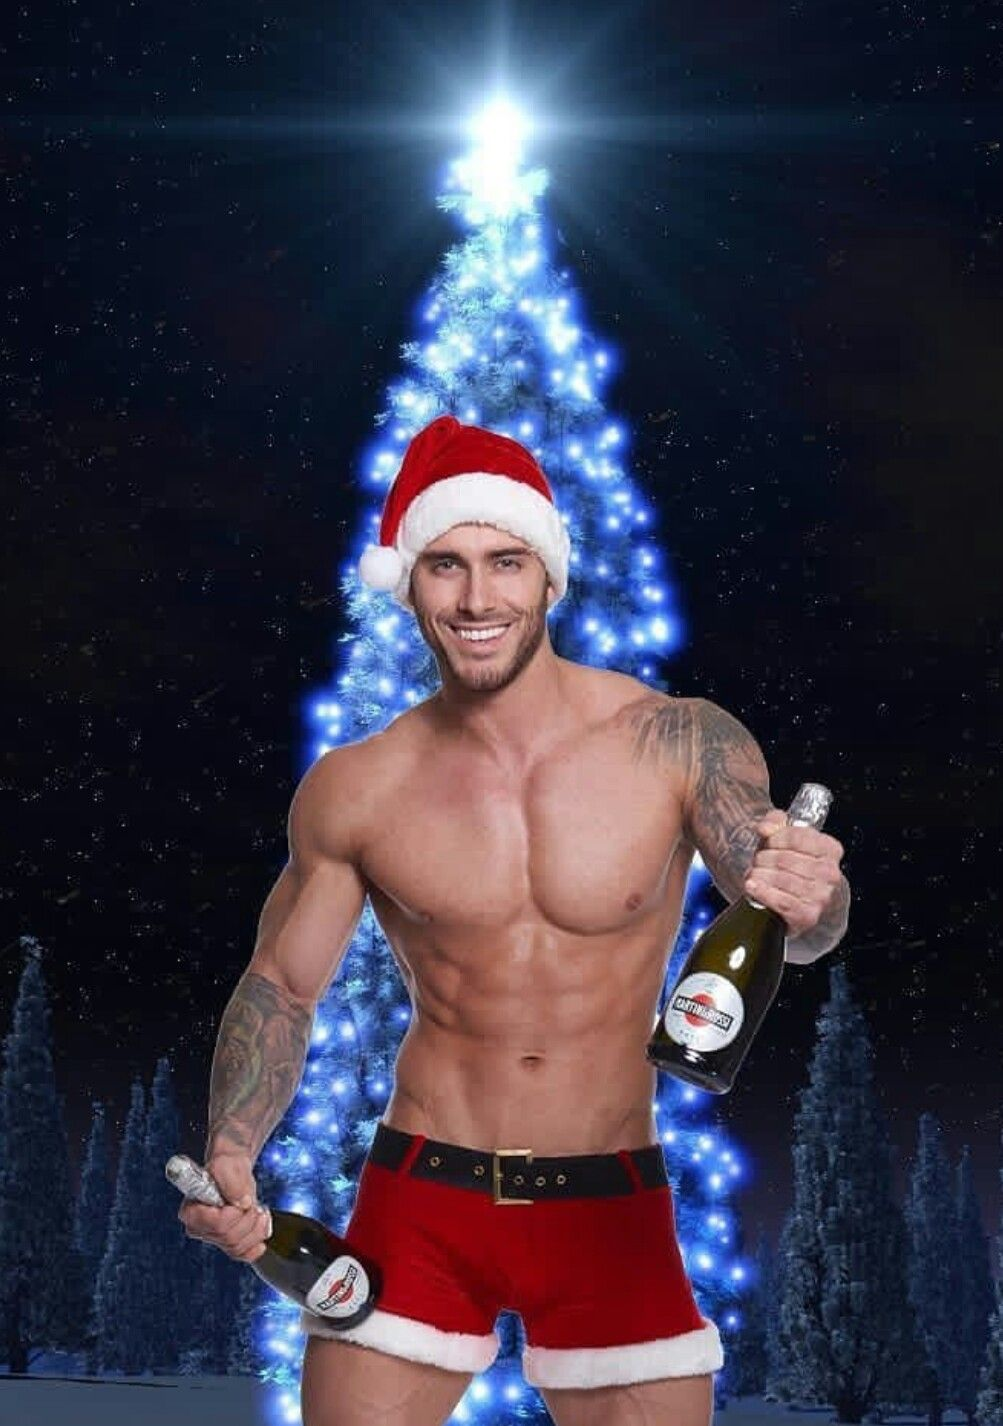 Gay christmas images could be coming to the hallmark channel